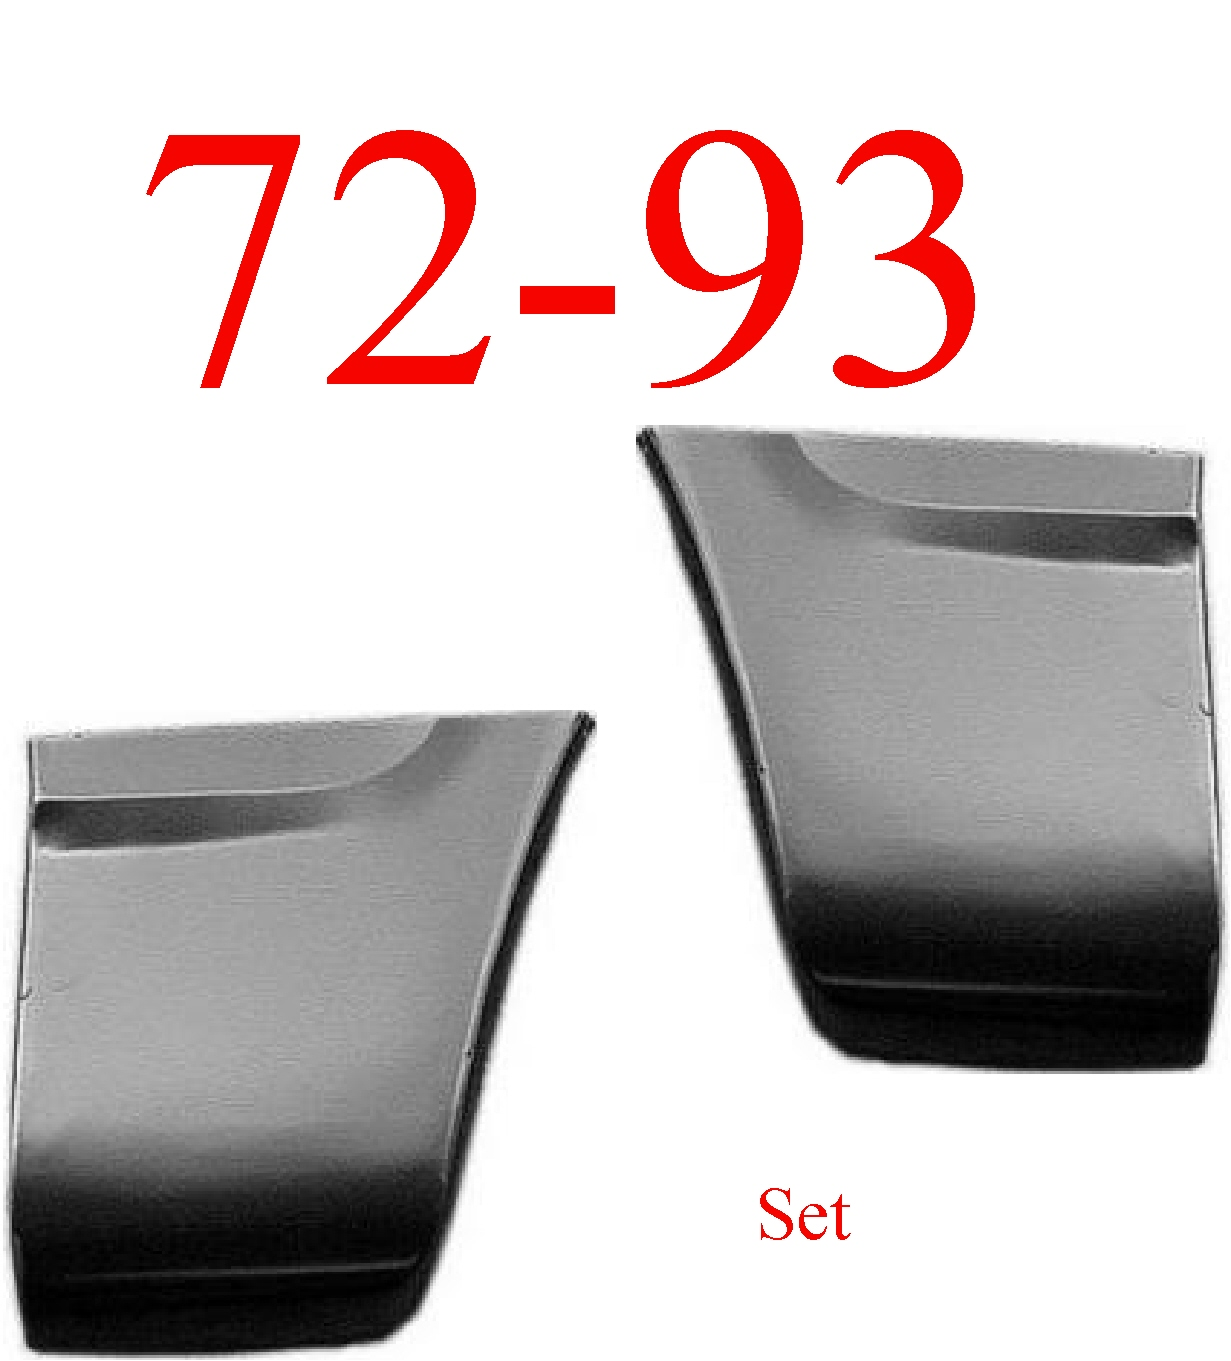 72-93 Dodge Rear Fender Bottom Set